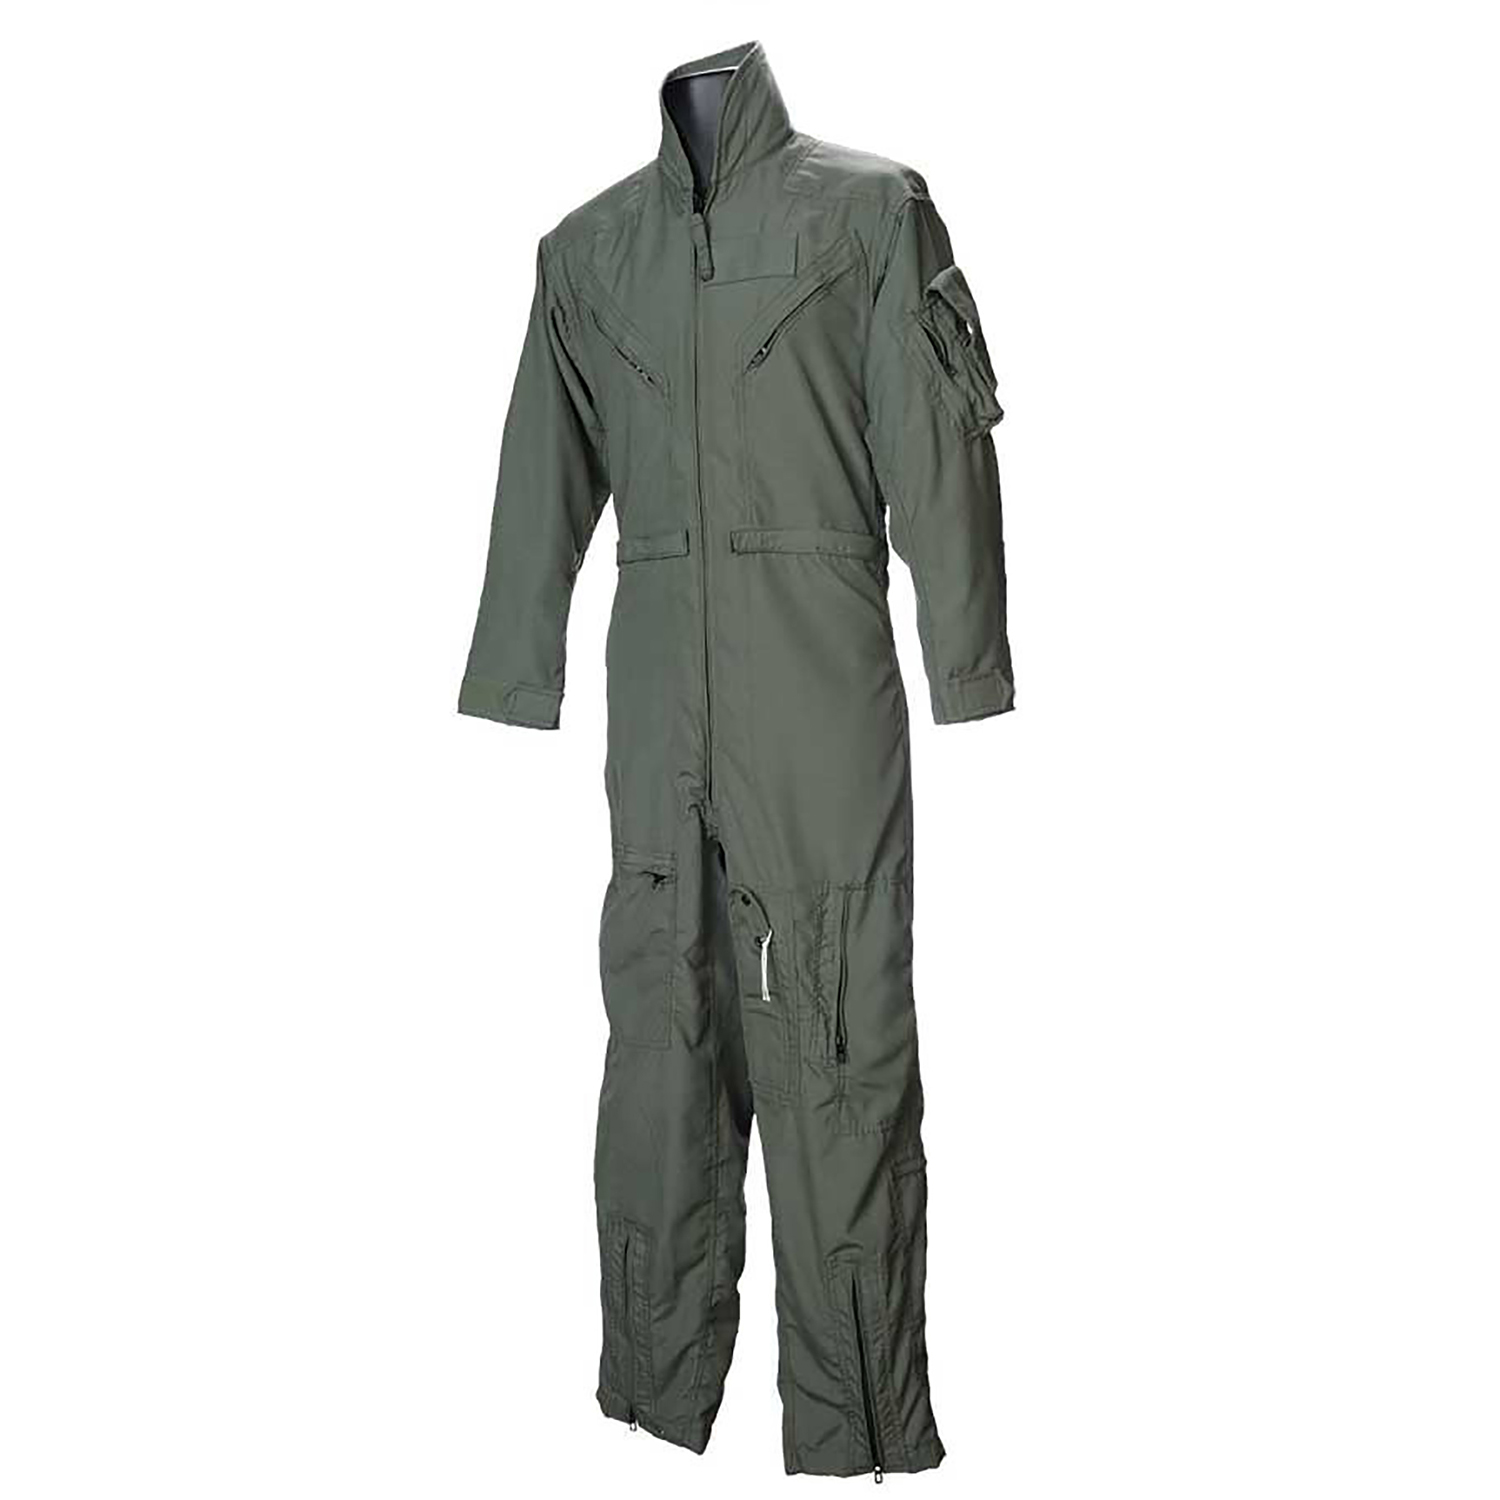 Barrier-Wear Nomex Flight Suit